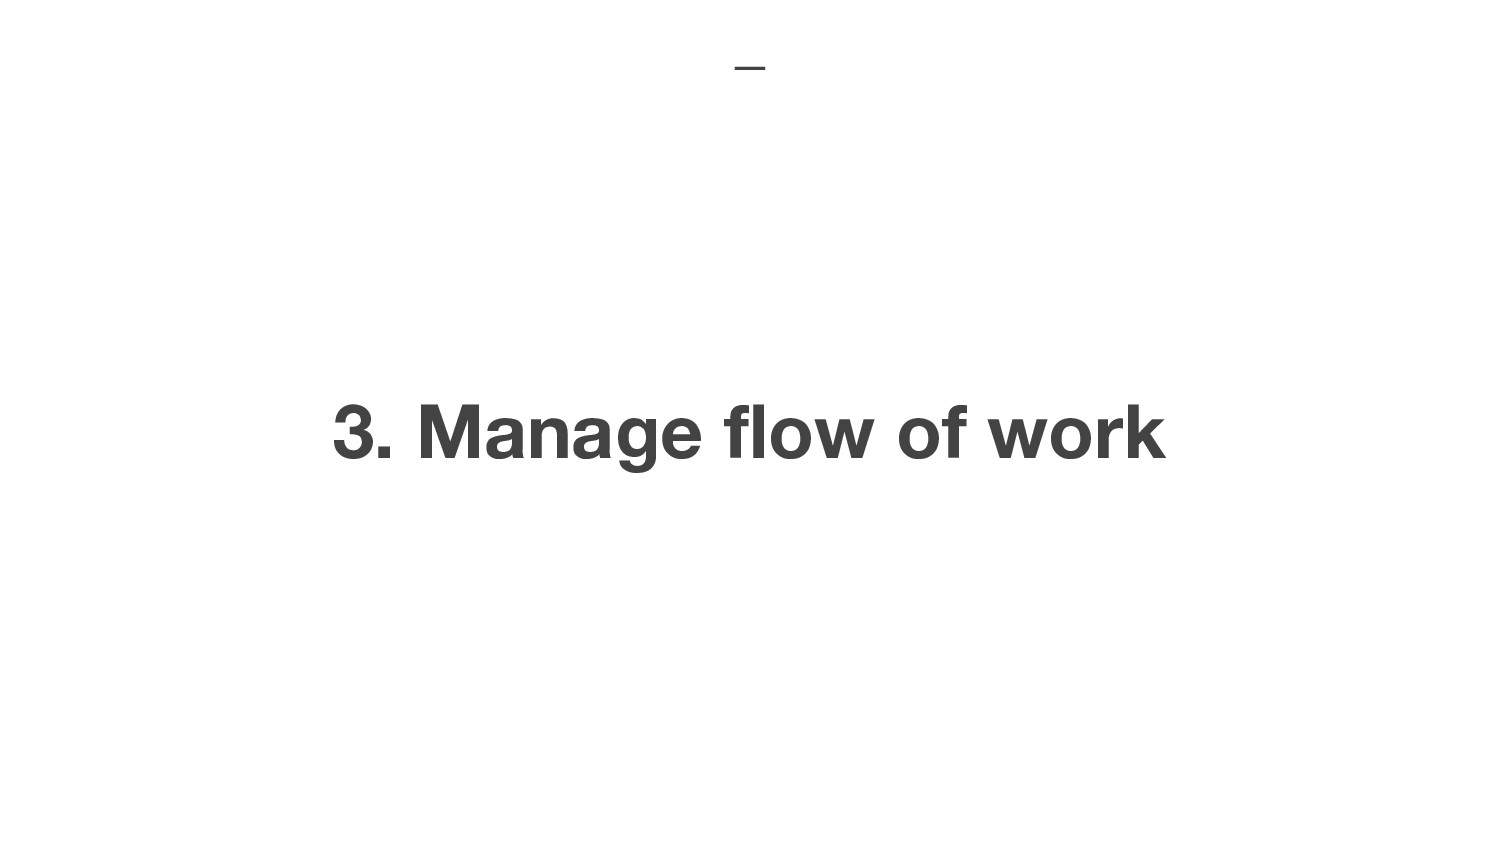 3. Manage flow of work